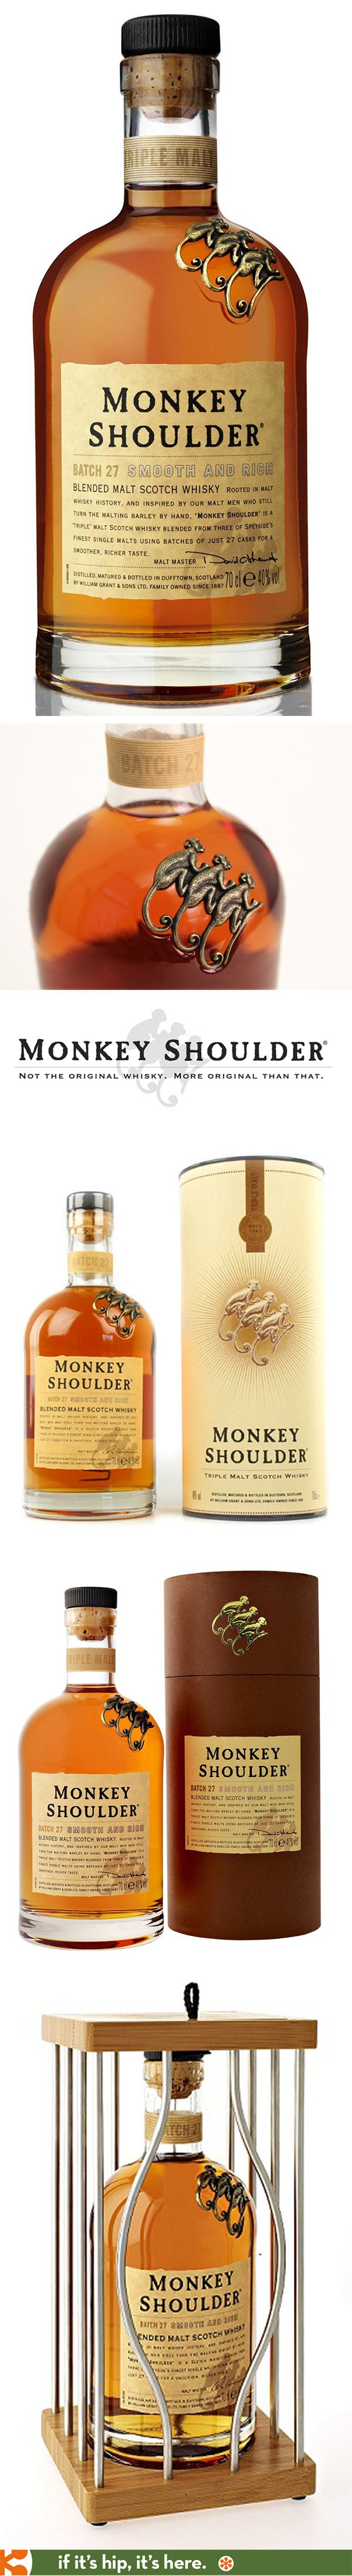 Monkey Shoulder Whisky and its various packaging. -- way to deliver on what you promise!